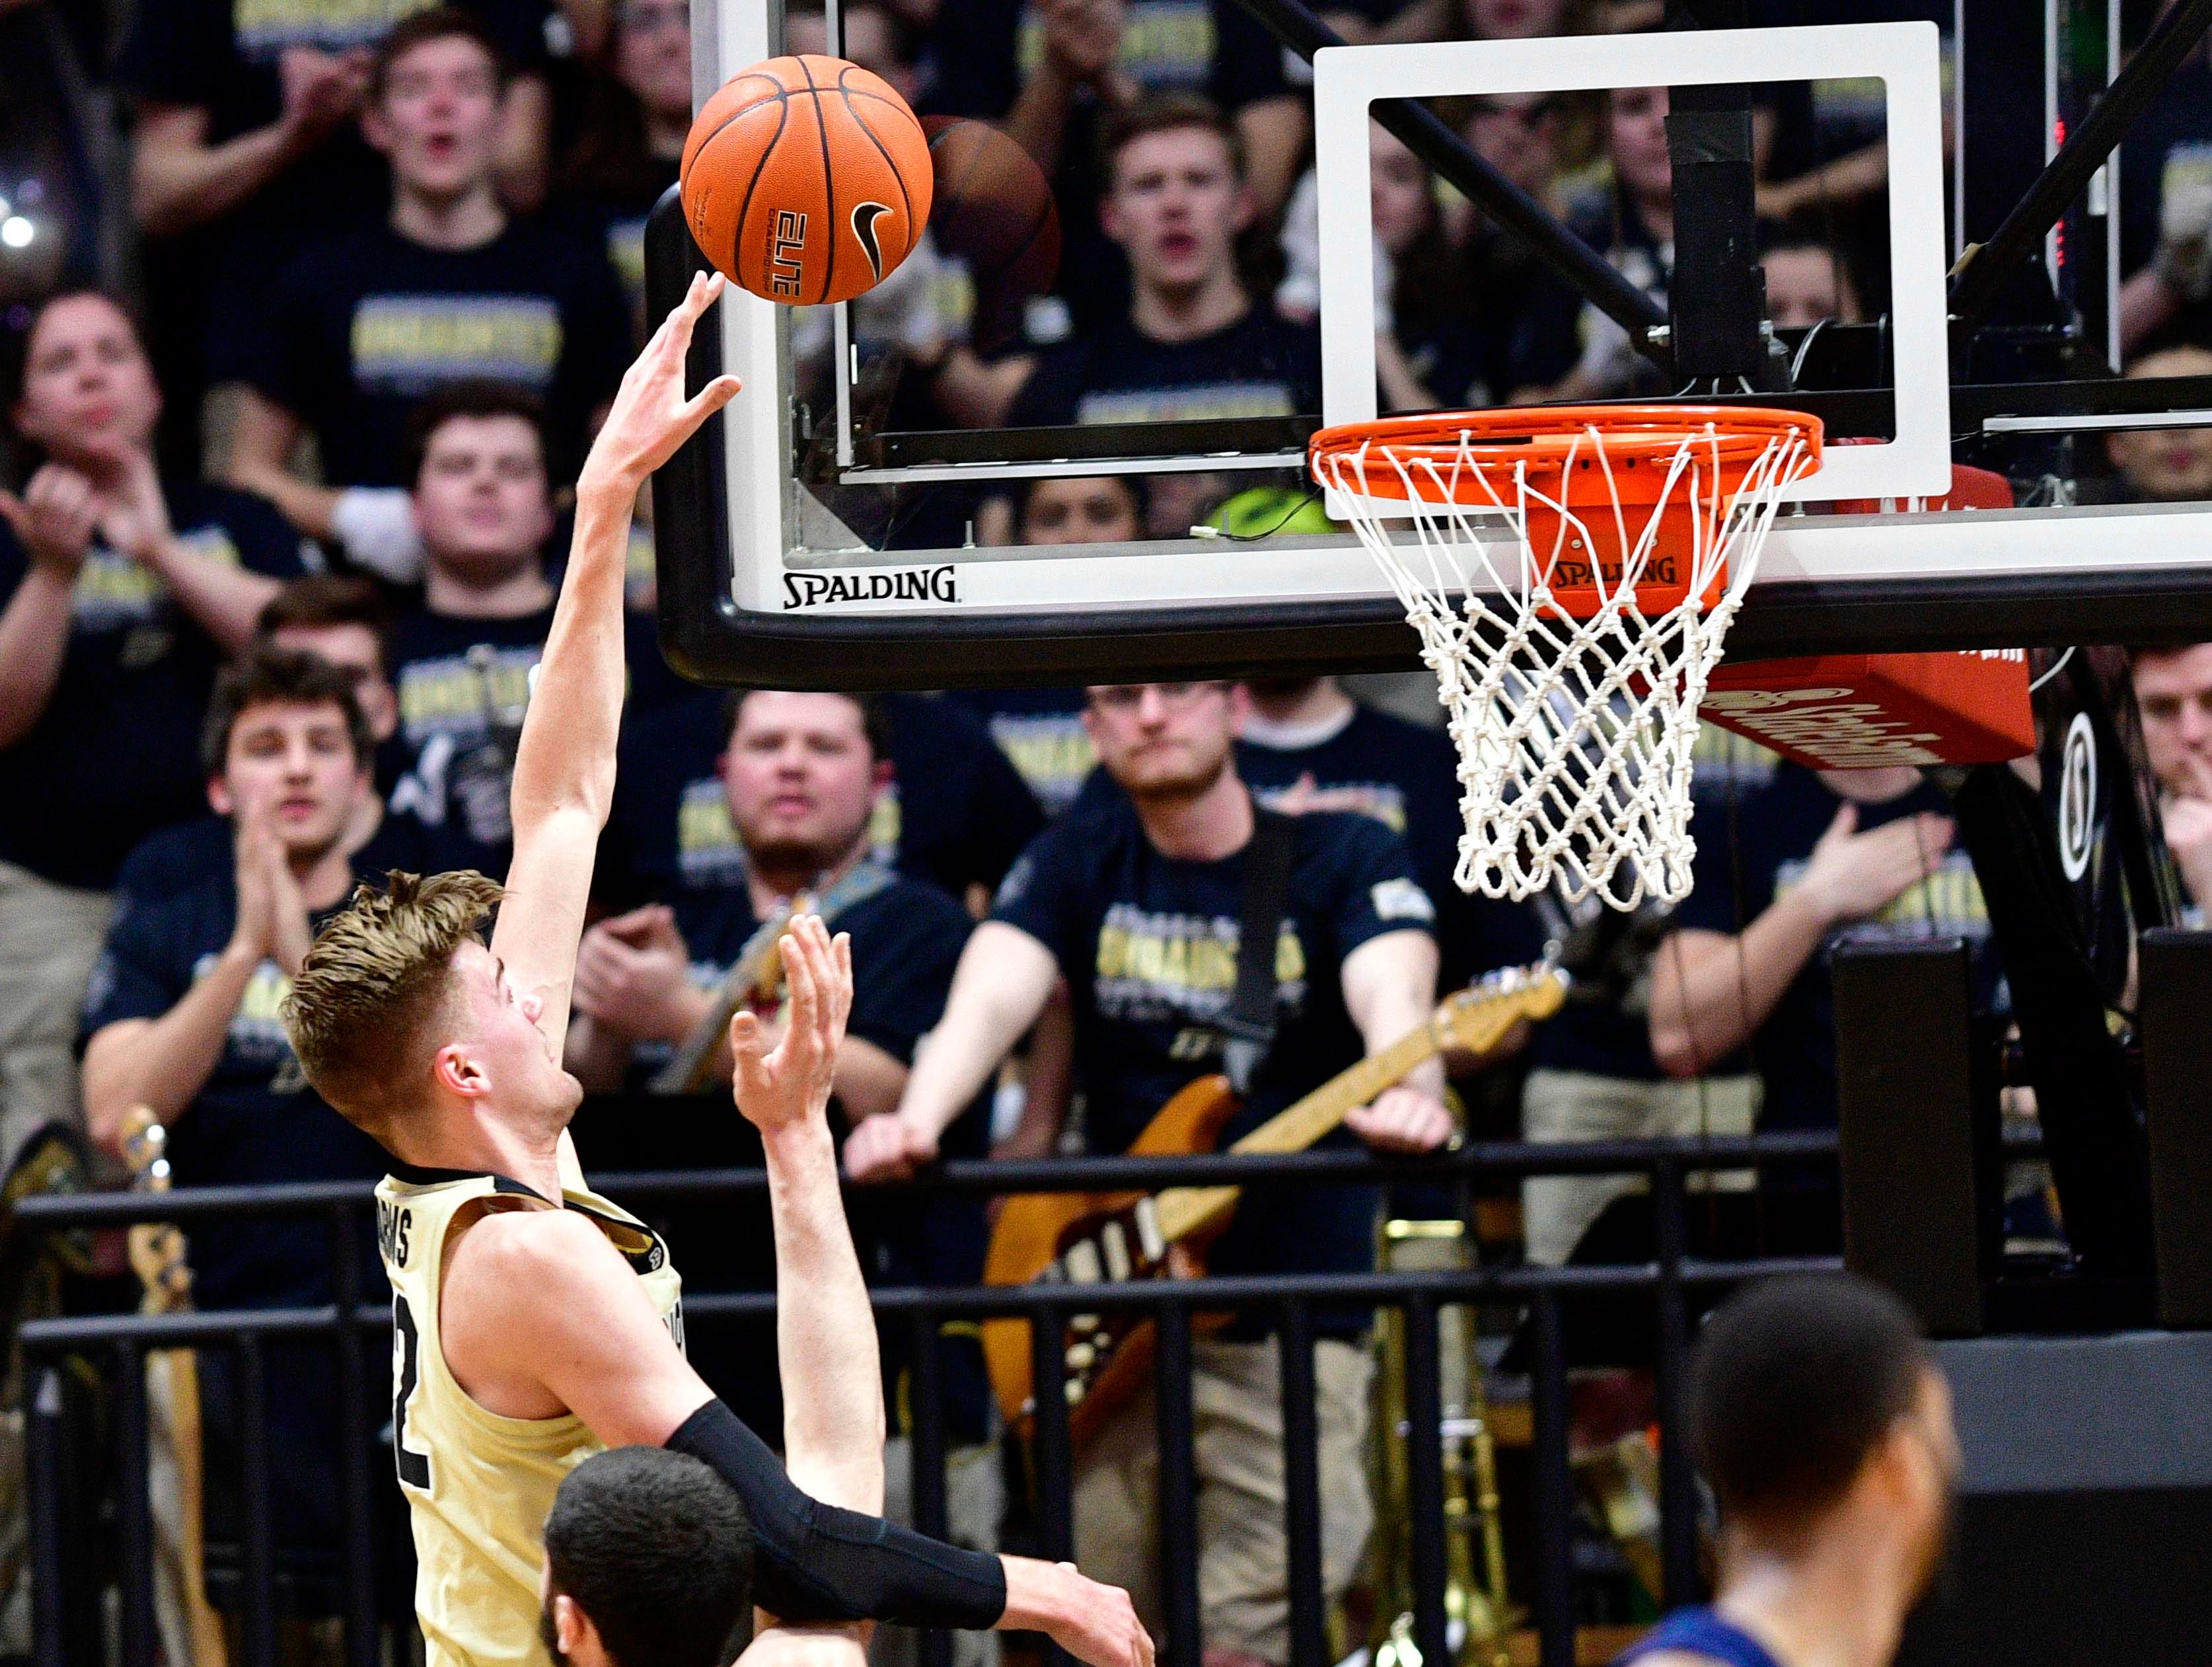 Feb 27, 2019; West Lafayette, IN, USA; Purdue Boilermakers center Matt Haarms (32) shoots the ball over Illinois Fighting Illini forward Giorgi Bezhanishvili (15) during the first half of the game at Mackey Arena. Mandatory Credit: Marc Lebryk-USA TODAY Sports